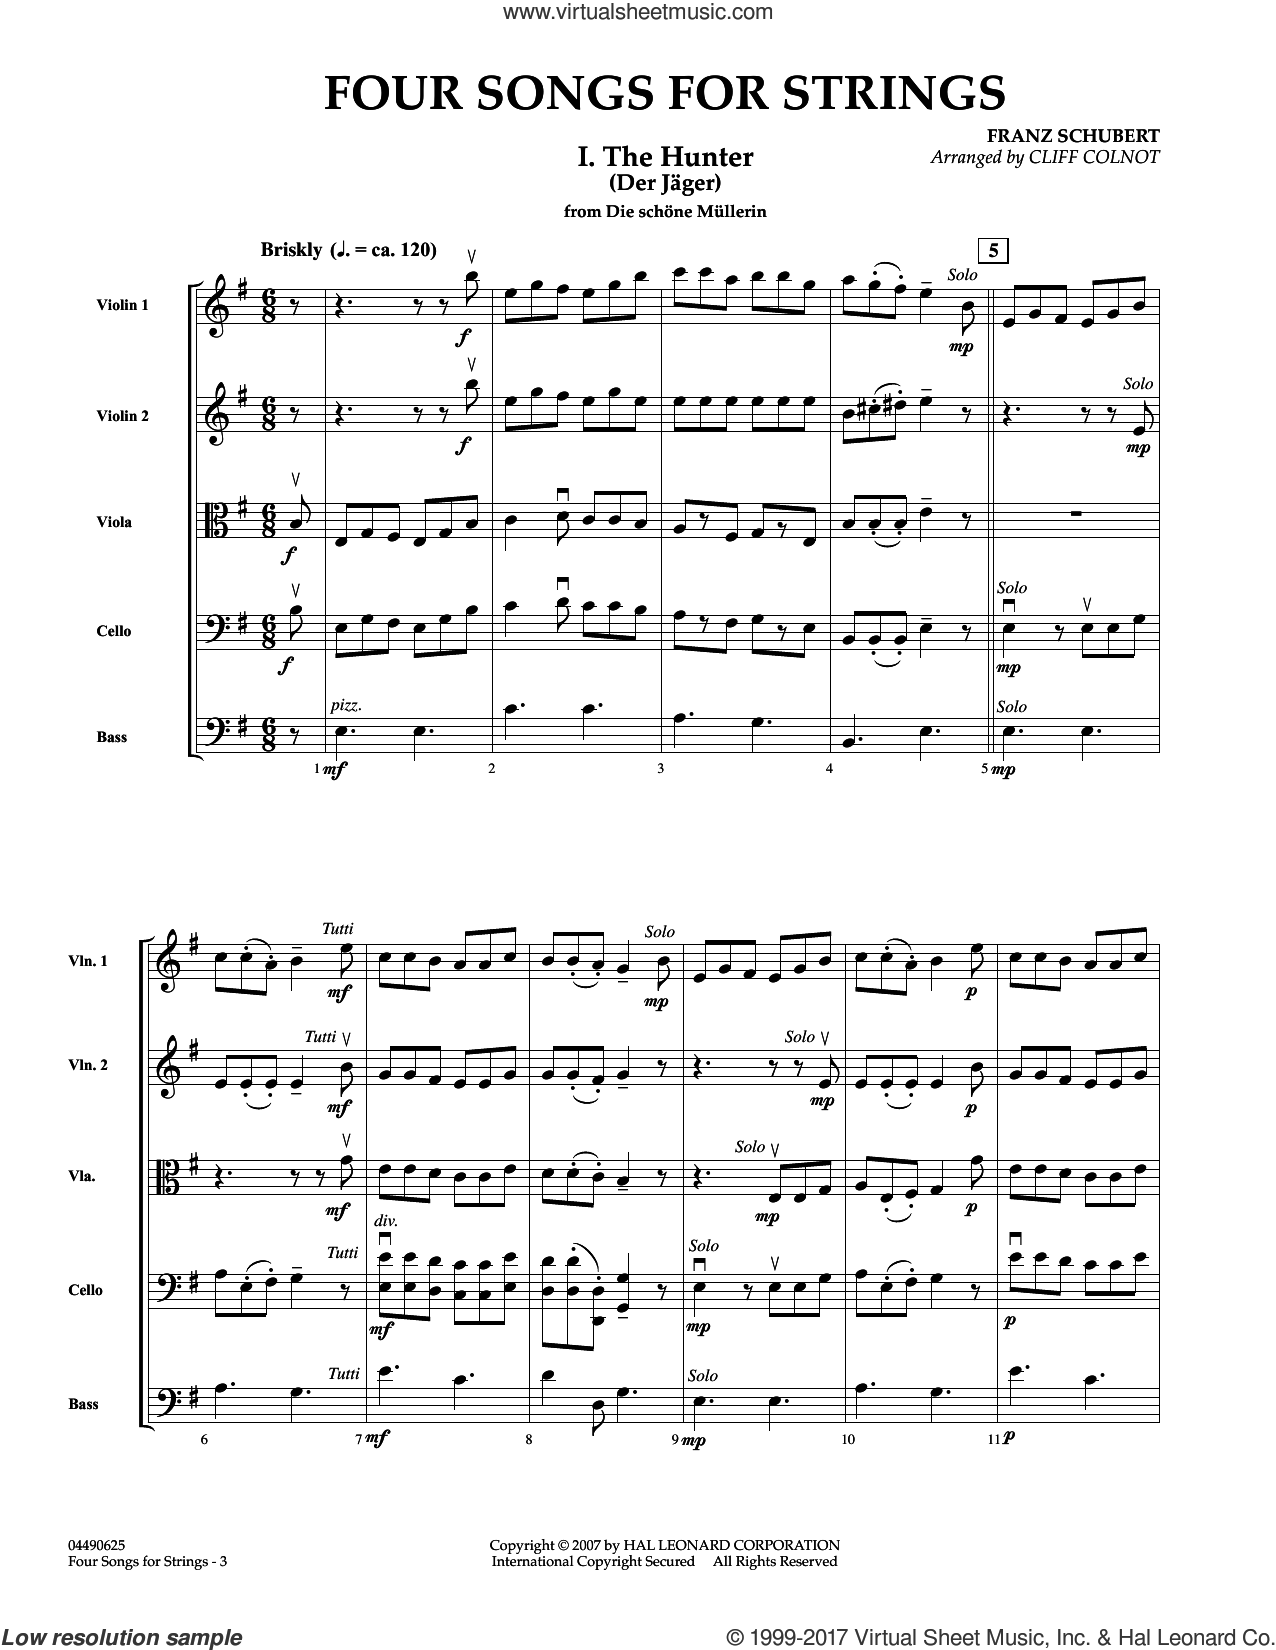 Schubert - Four Songs for Strings sheet music (complete collection) for  orchestra